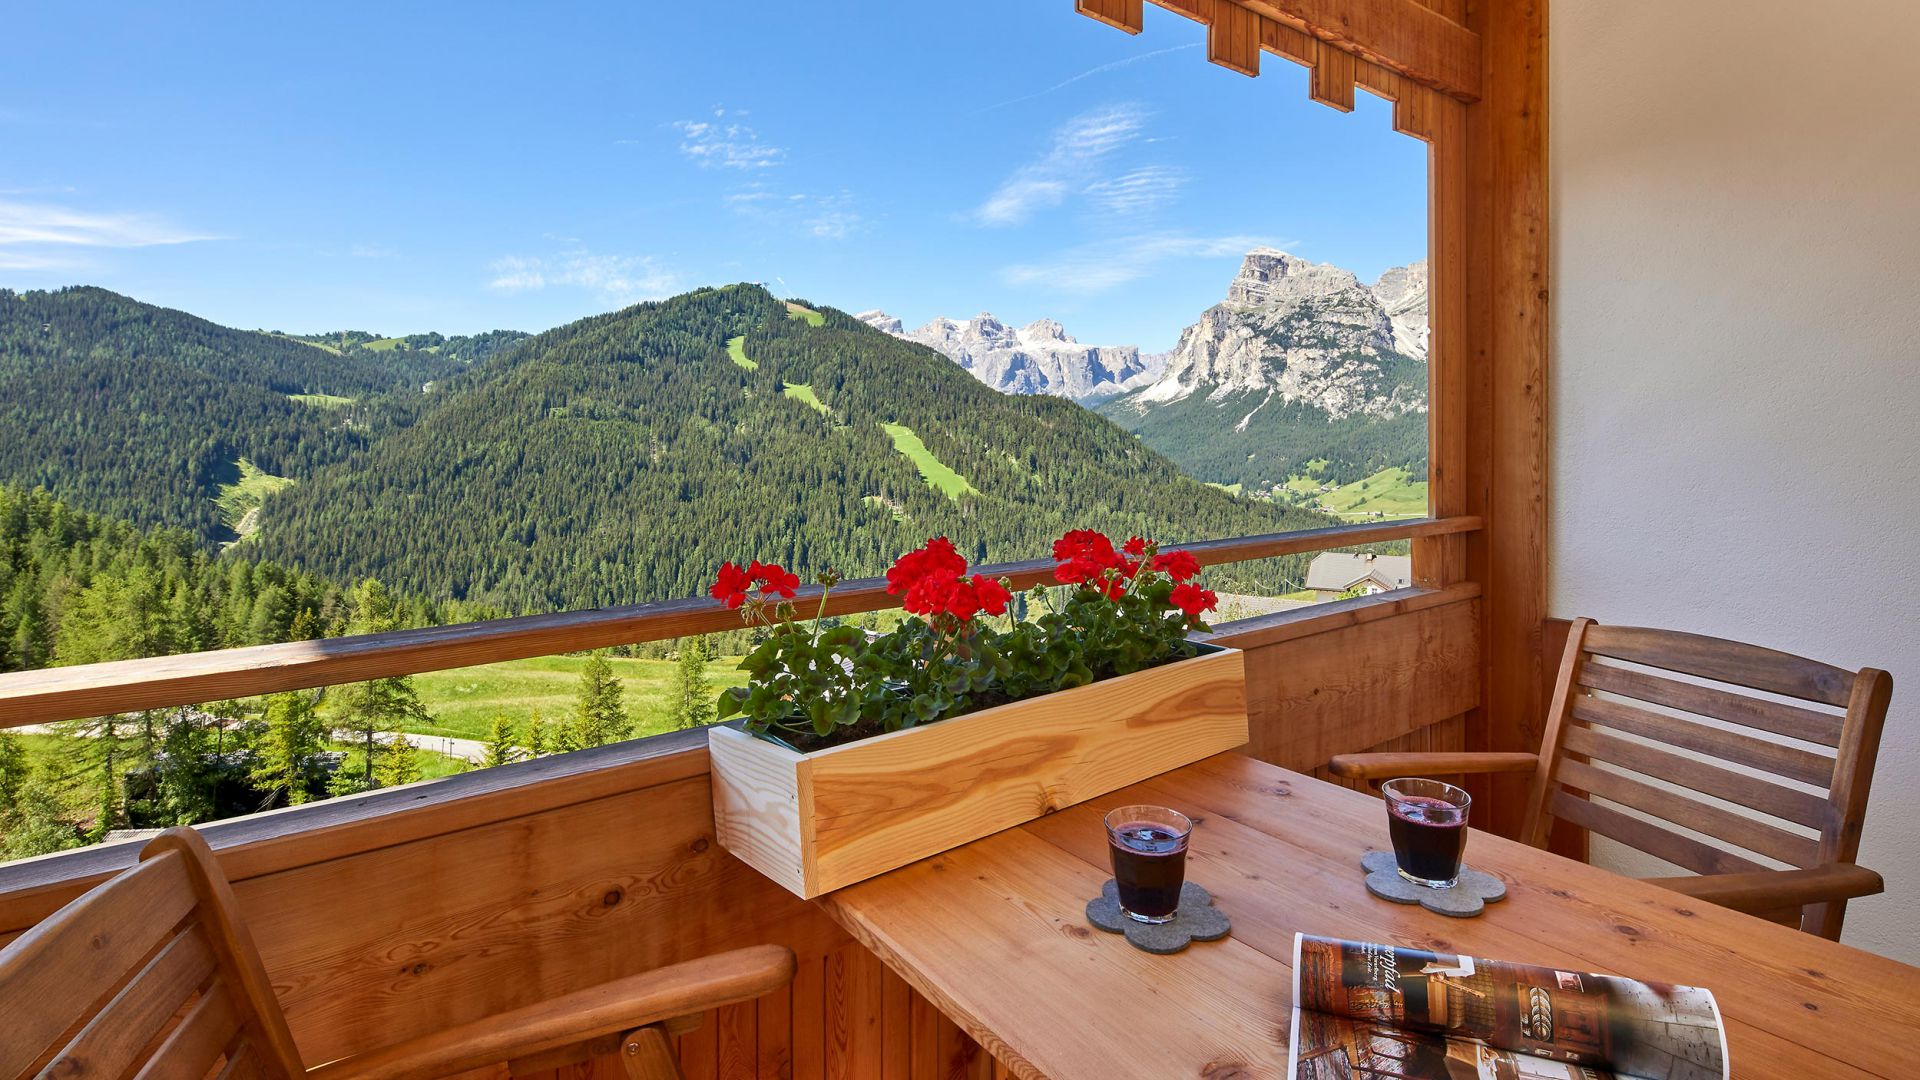 Apartments La Morinara in San Cassiano